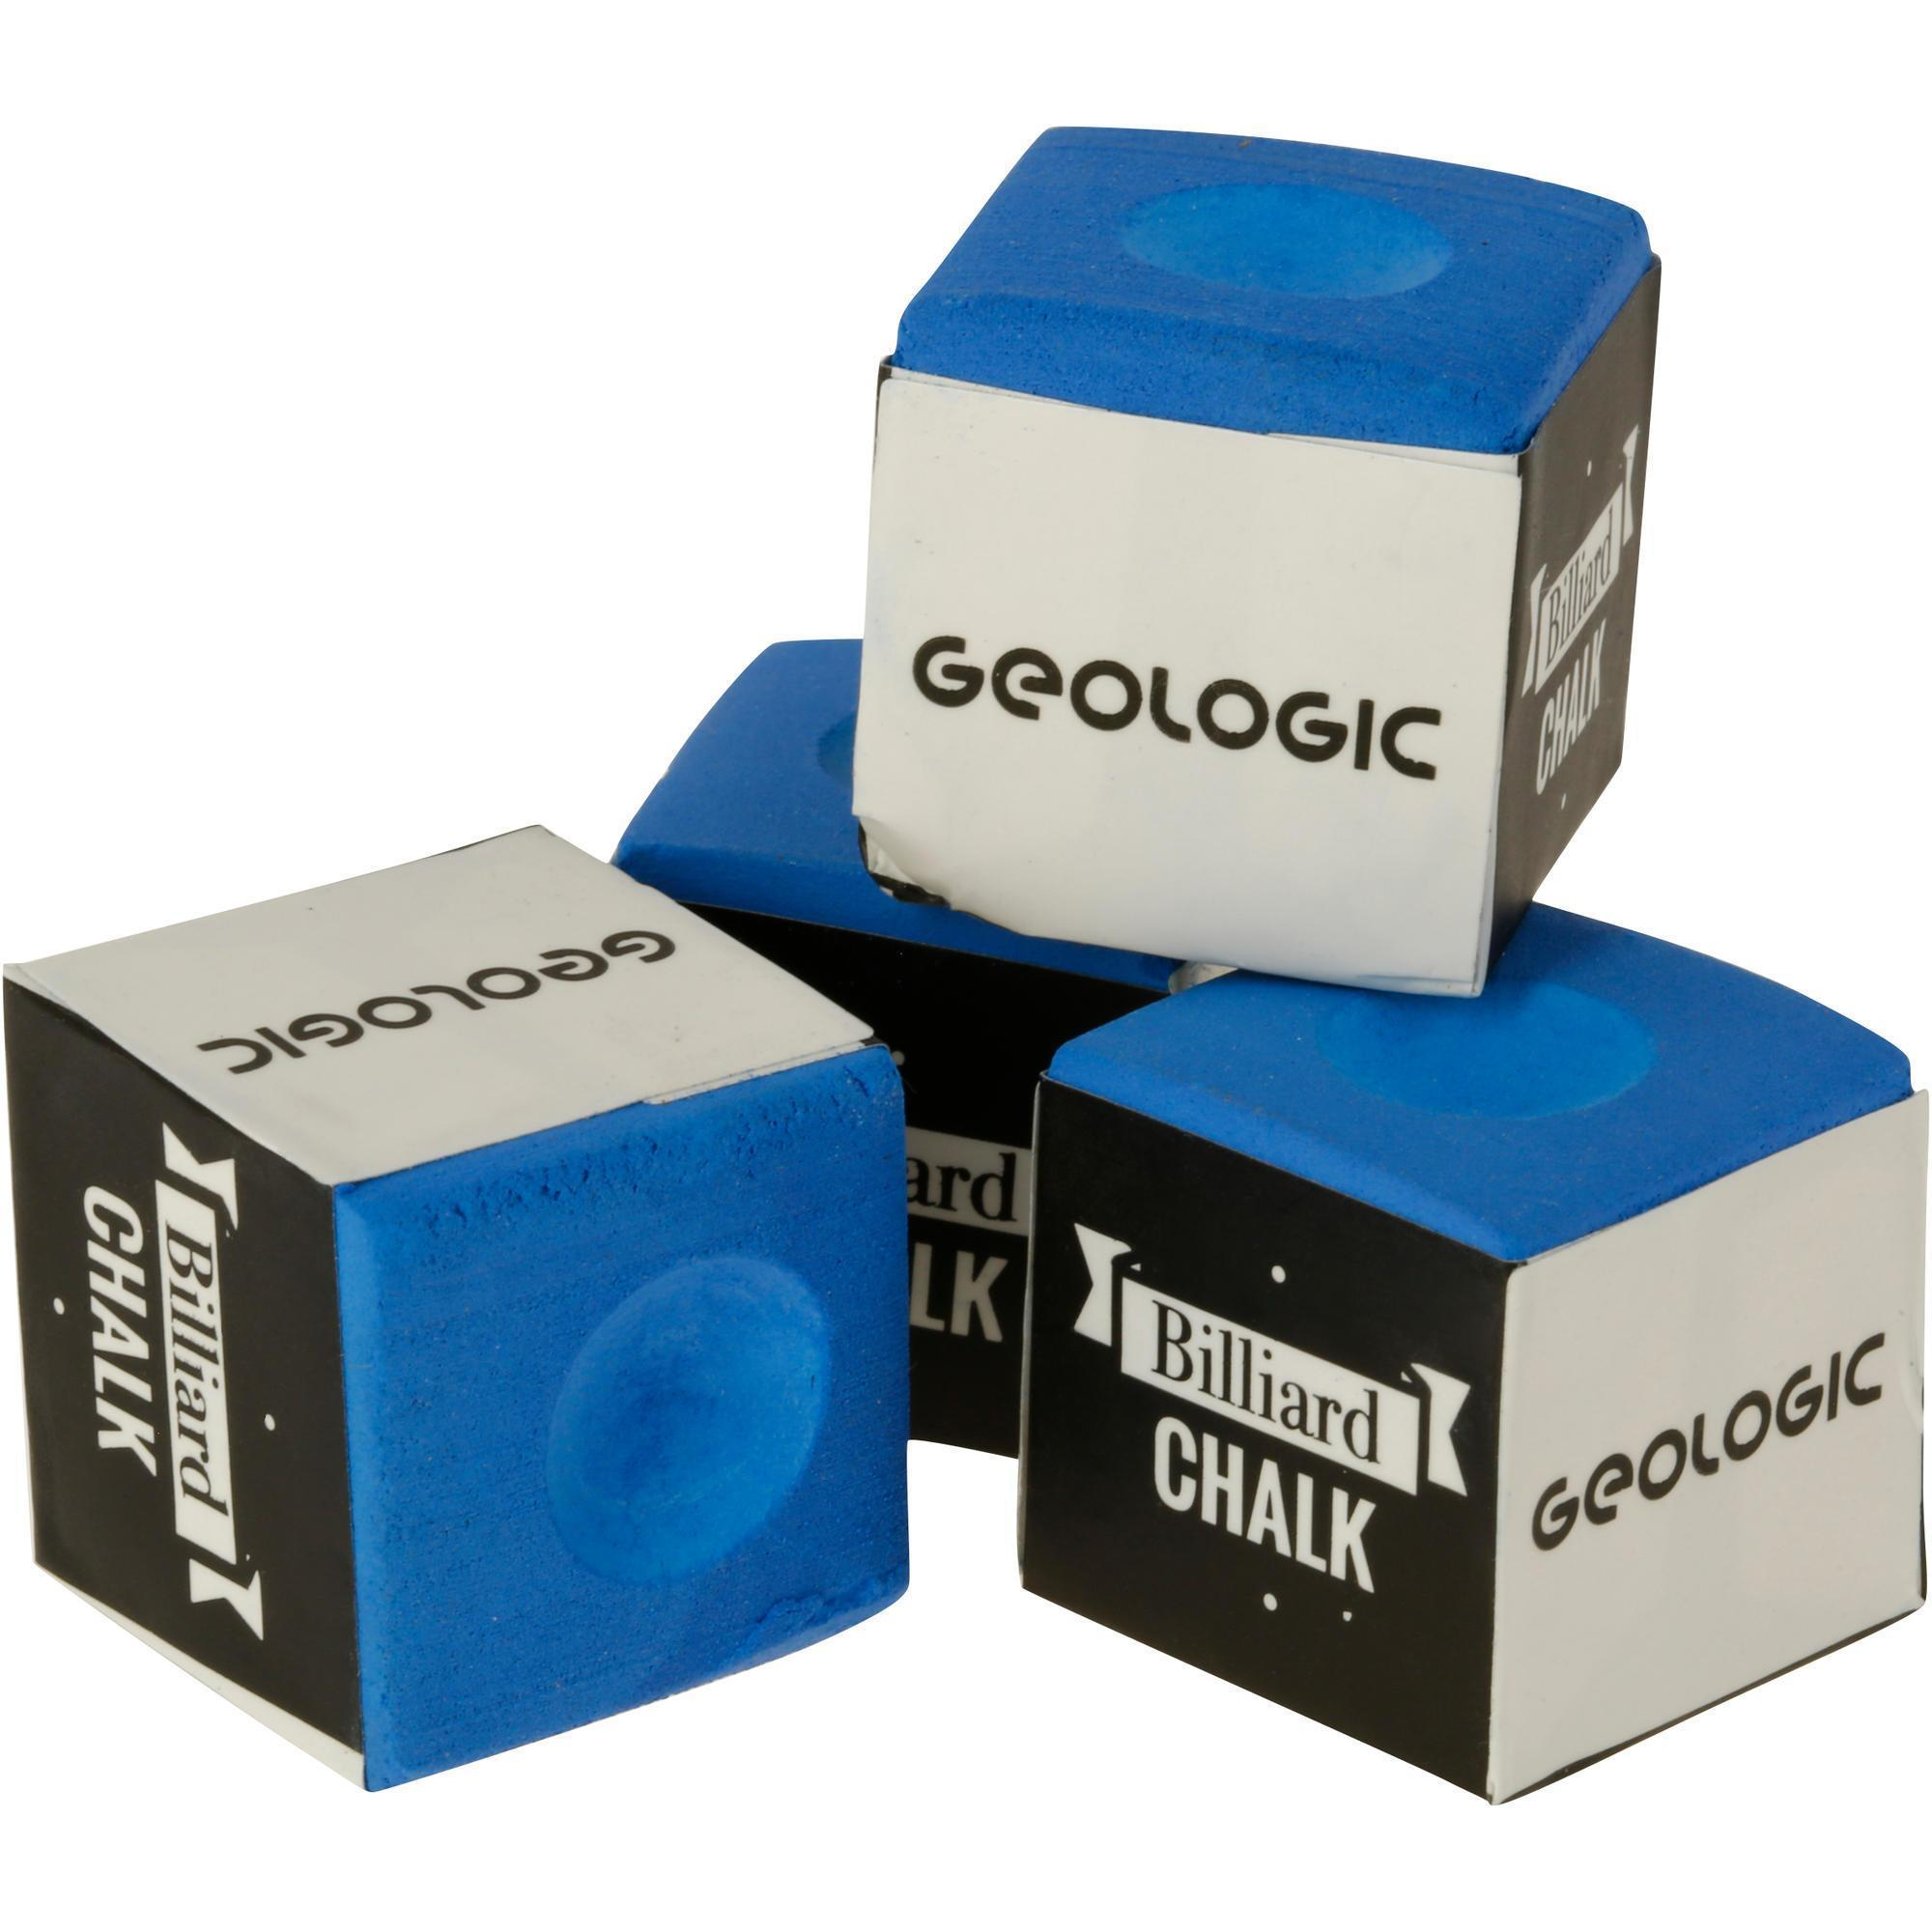 4 craies de billard geologic for Queue de billard decathlon